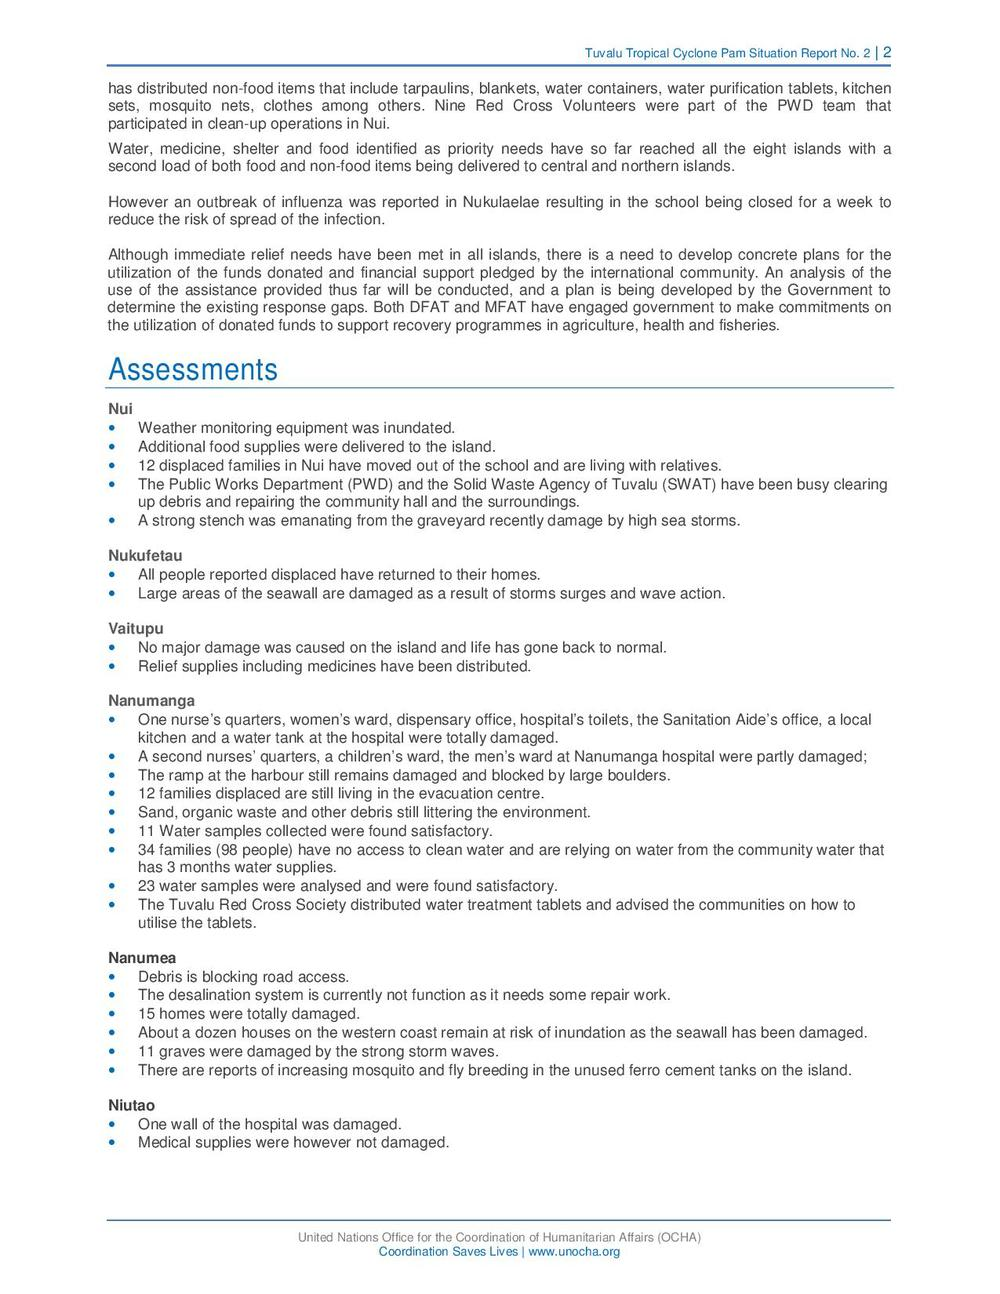 reliefweb.int_sites_reliefweb.int_files_resources_Tuvalu Tropical Cyclone Pam Situation Report No. 3-page-002.jpg